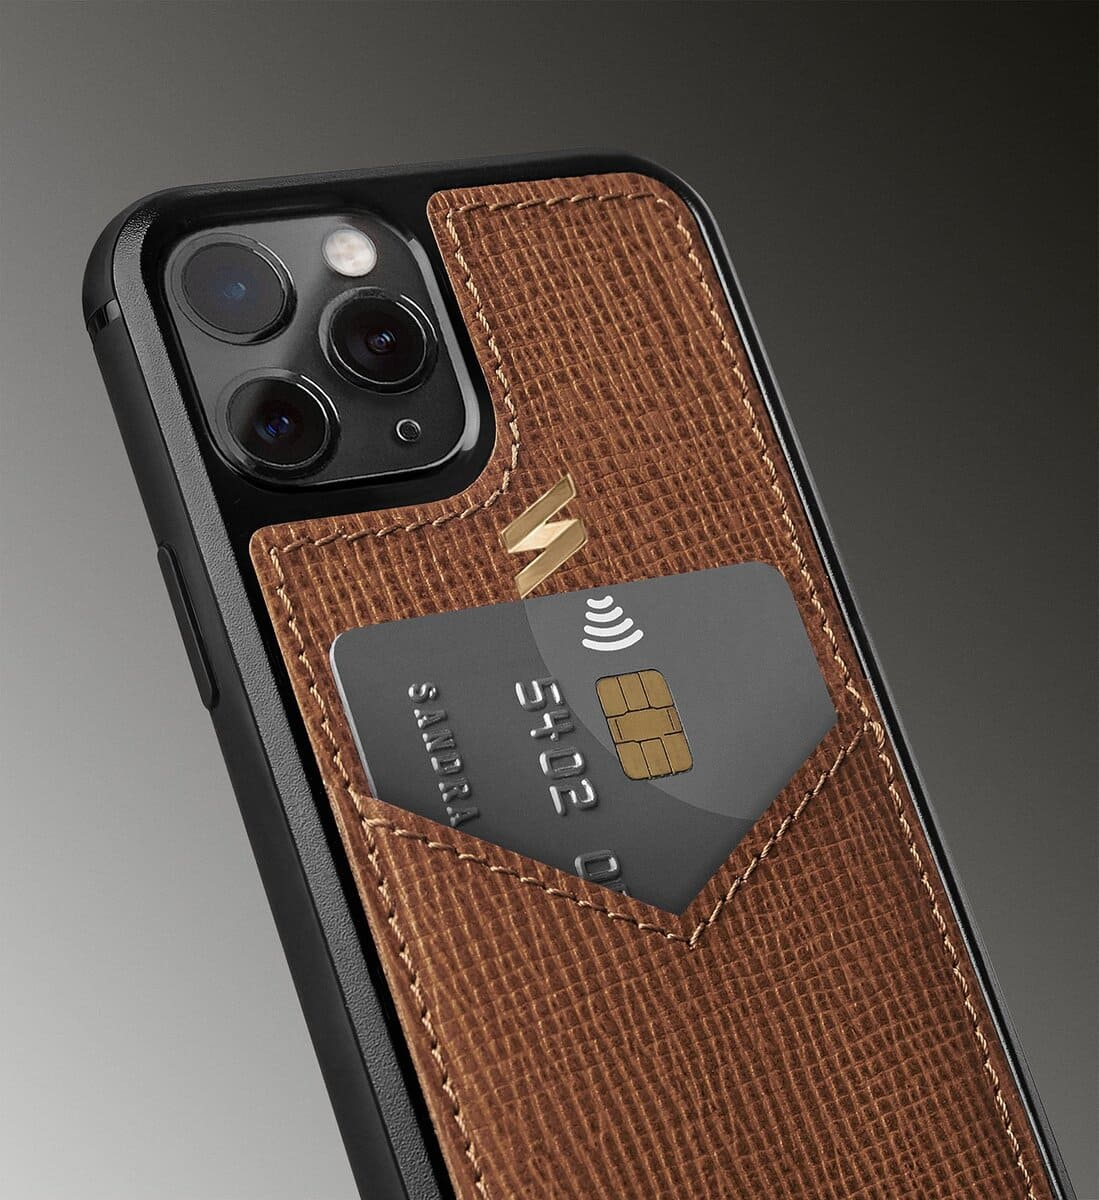 Corteccia leather case for iphone 11 pro with a space to store cards